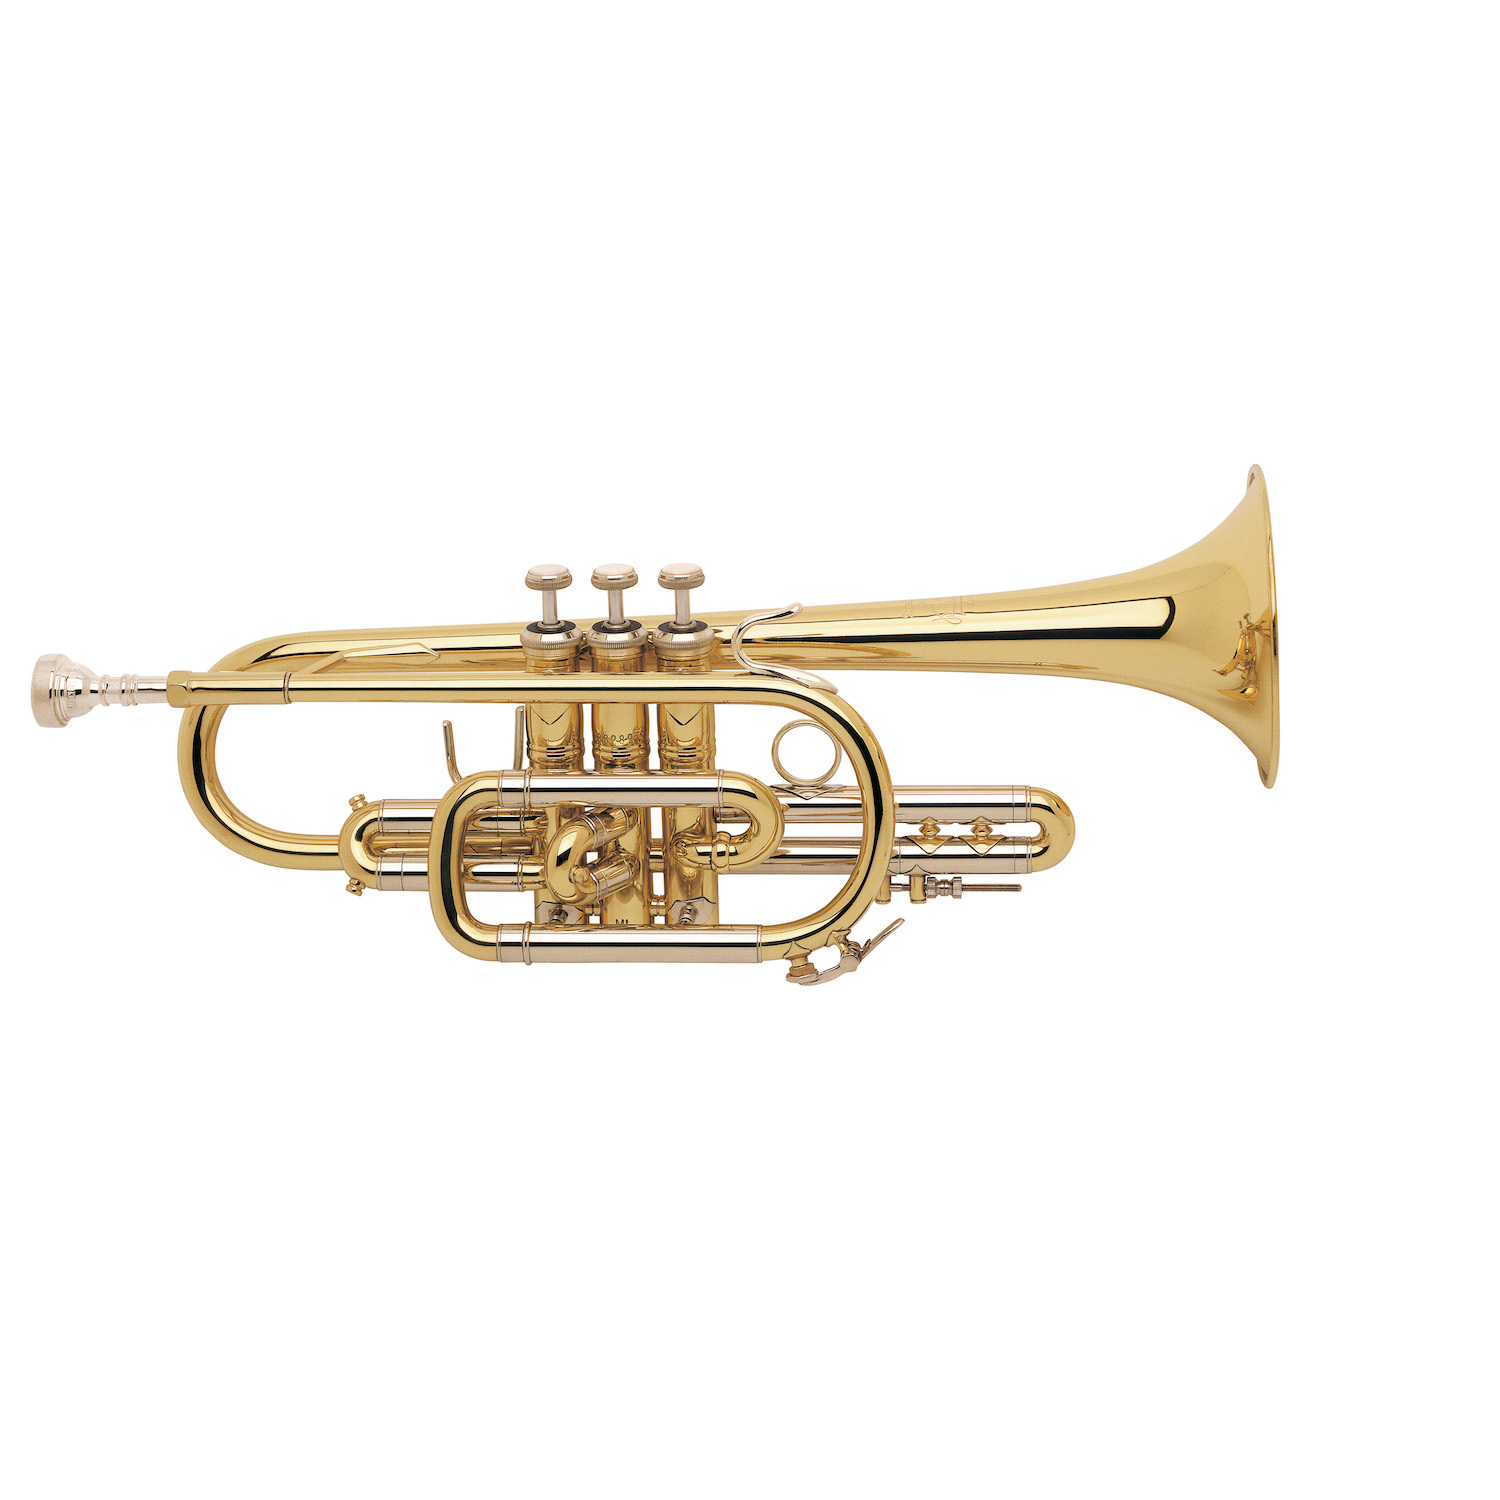 Bach Stradivarius Cornet - $250 INSTANT REBATE (Shown in Cart)